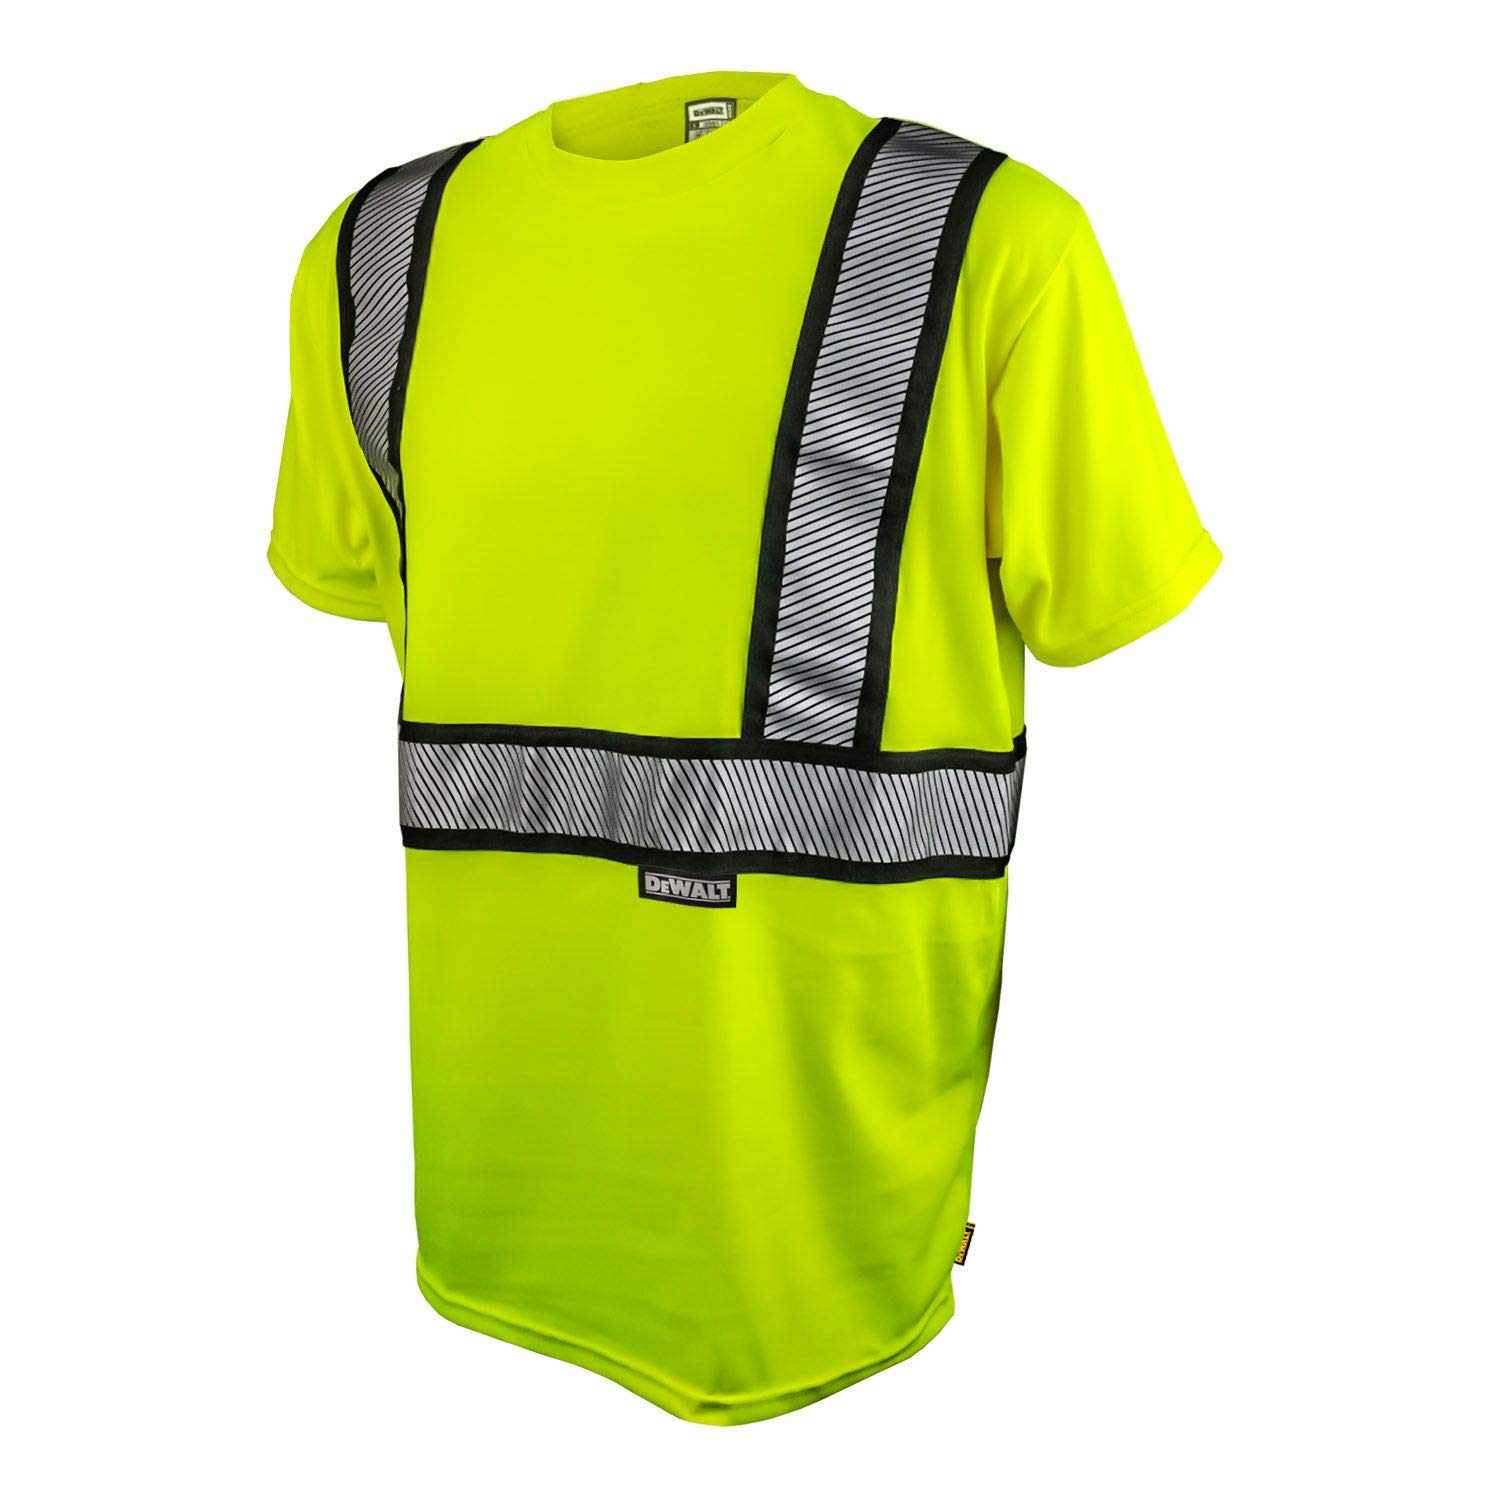 Radians Max 77% OFF DST911-L Green Short Sleeve S Resistant Modacrylic Online limited product Flame